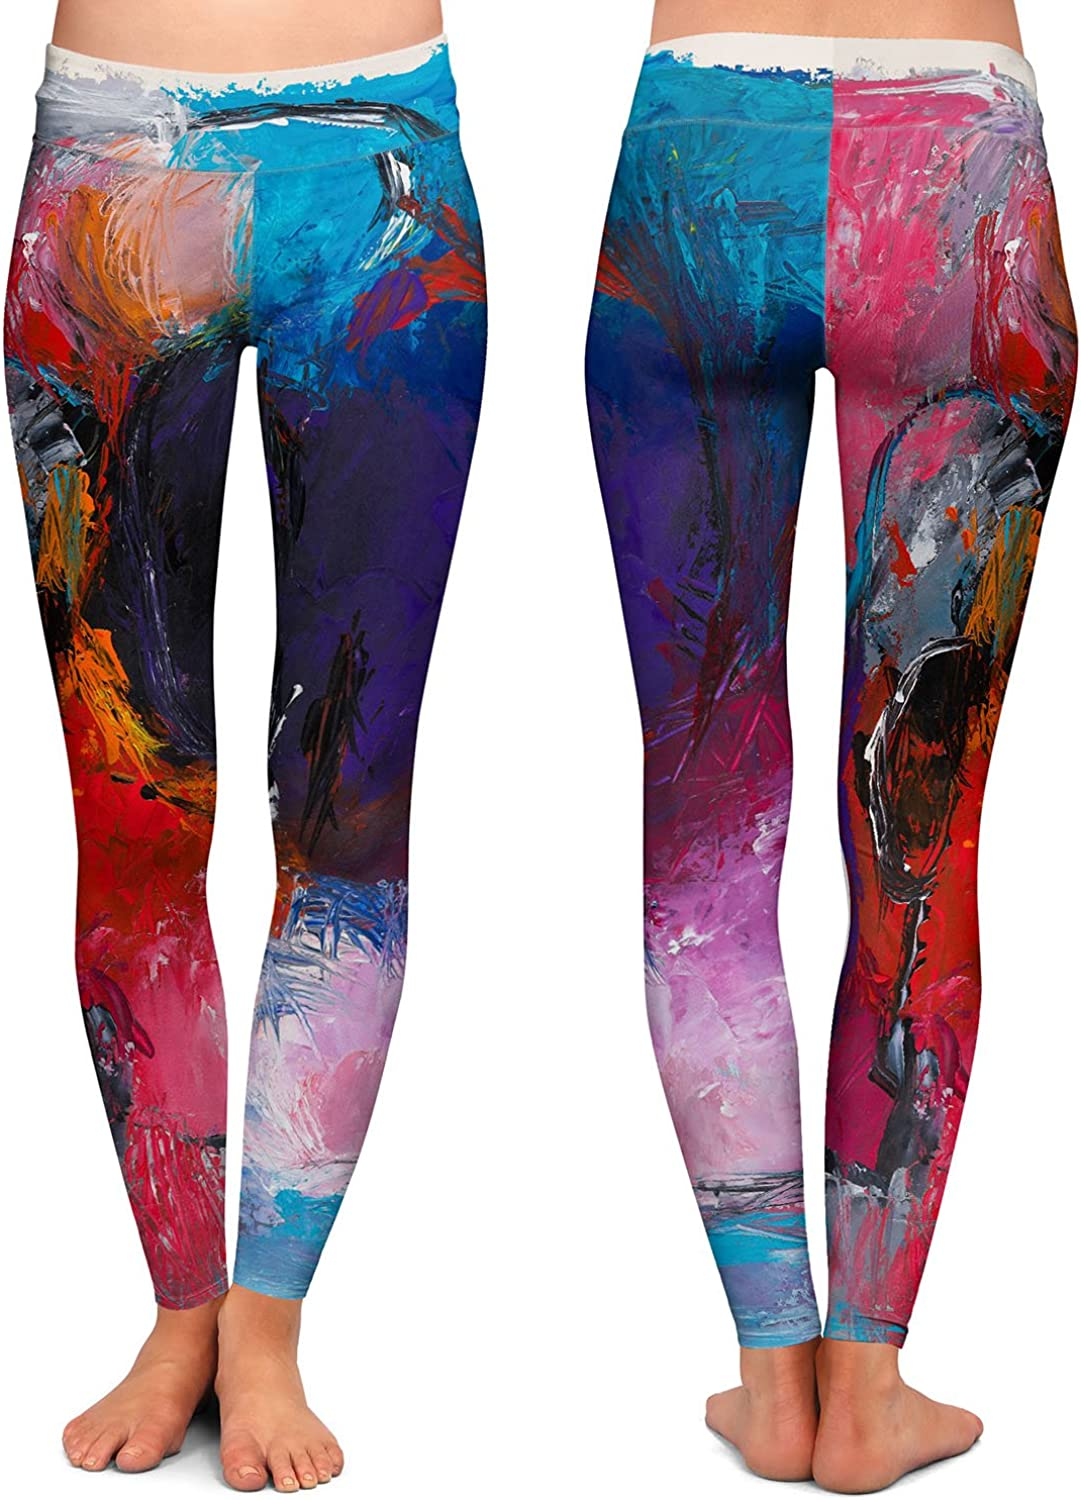 Sunset Abstraction Athletic Yoga Leggings from DiaNoche Designs by Hooshang Khorasani